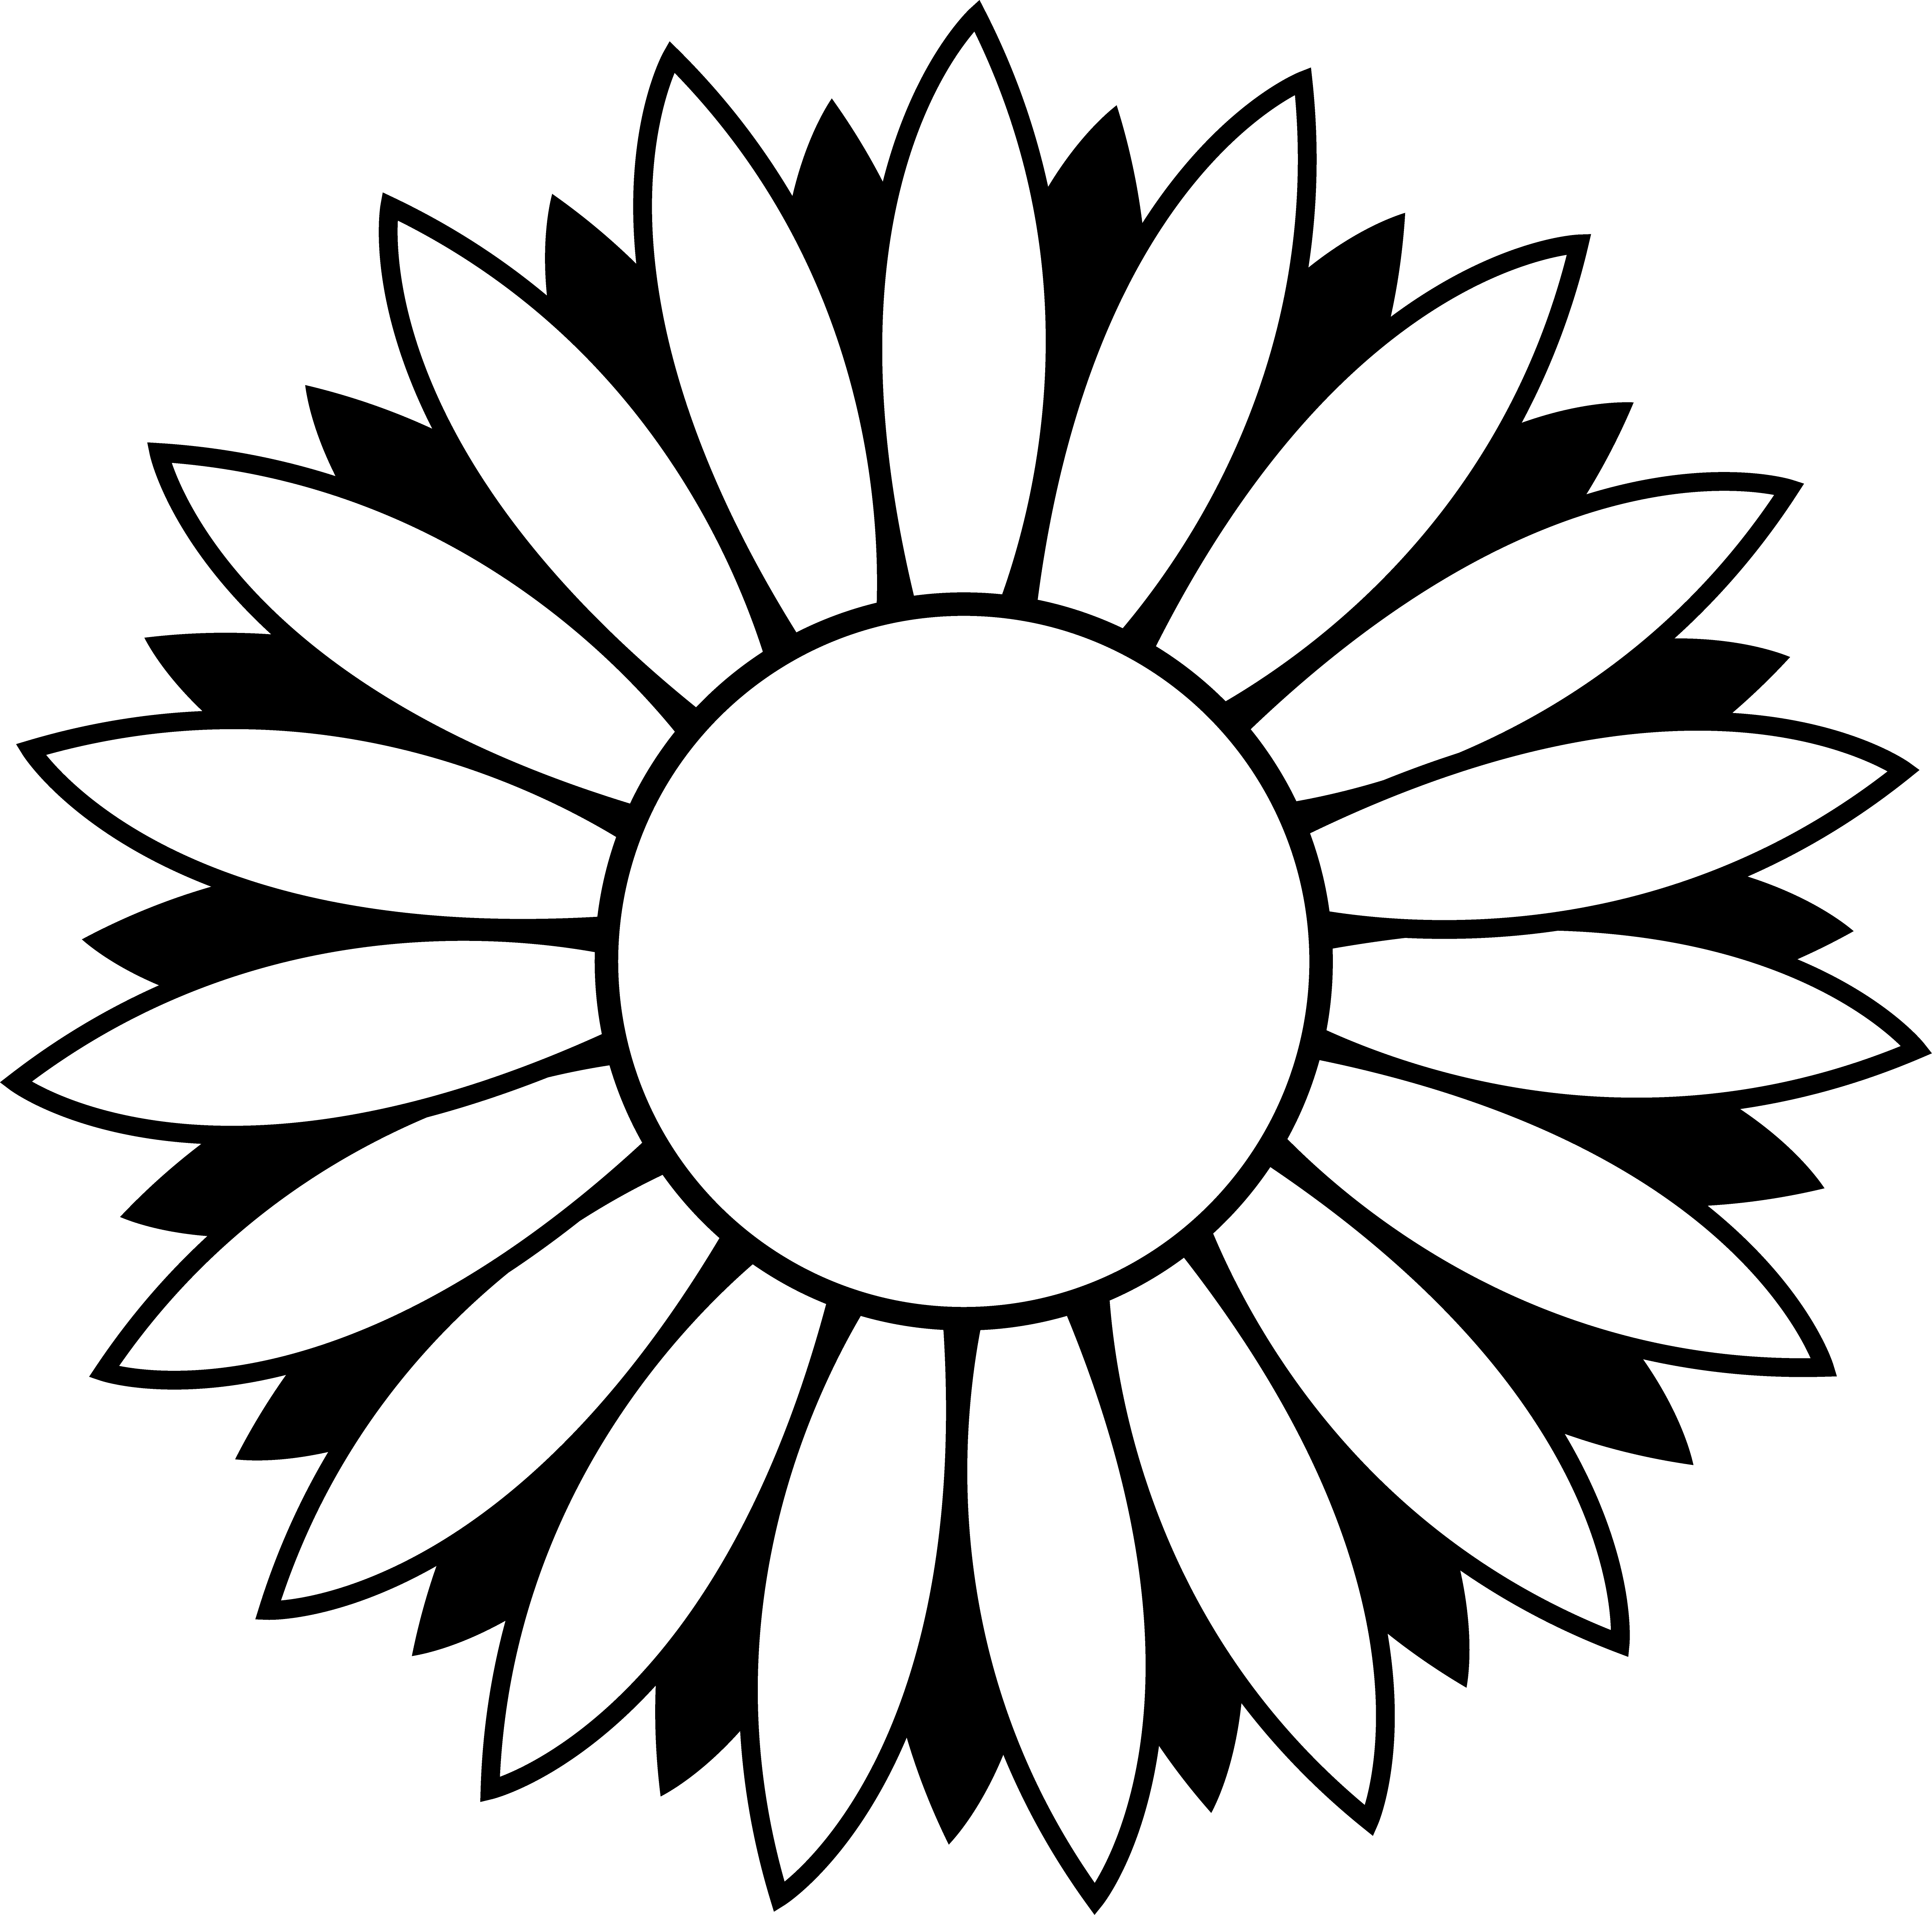 sunflower outline picture sunflower outline clipart best outline sunflower picture